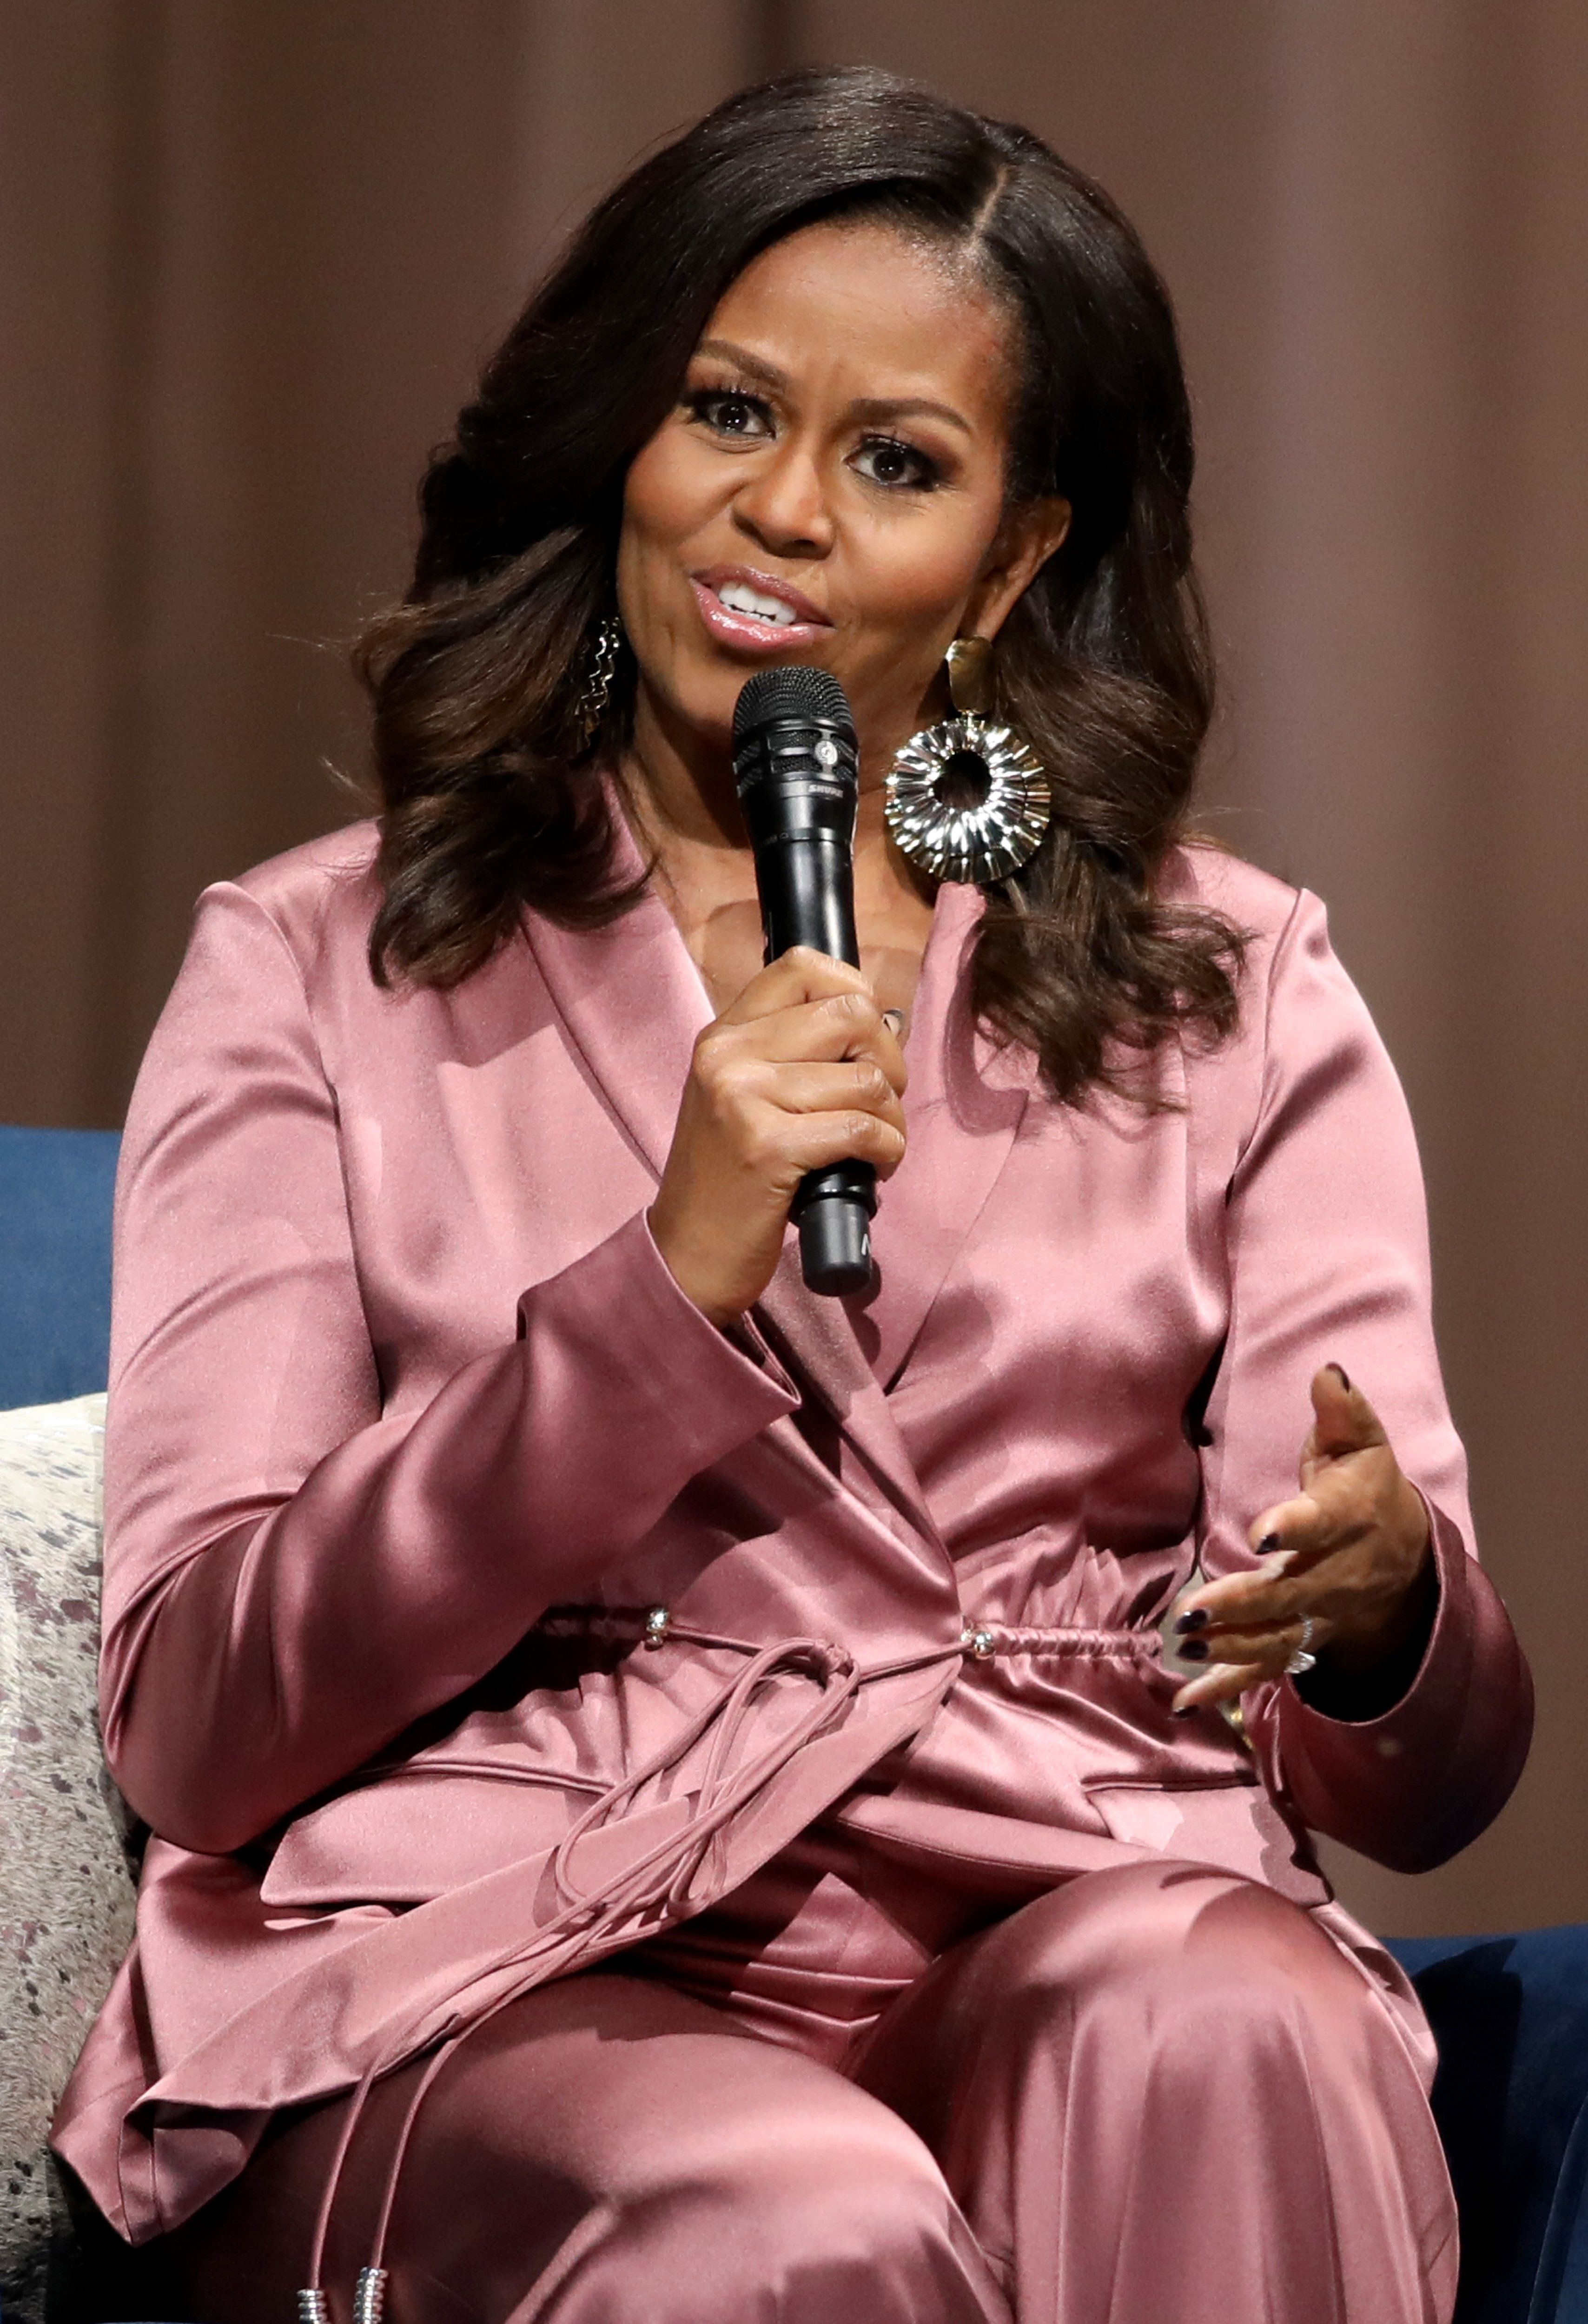 SAN JOSE, CA - DECEMBER 14: Former First Lady Michelle Obama speaks during her 'Becoming' book tour stop at the SAP Center in San Jose, Calif., on Friday, Dec. 14, 2018. Obama's memoir was released on November 13th.  (Anda Chu/Digital First Media/The Mercury News via Getty Images)